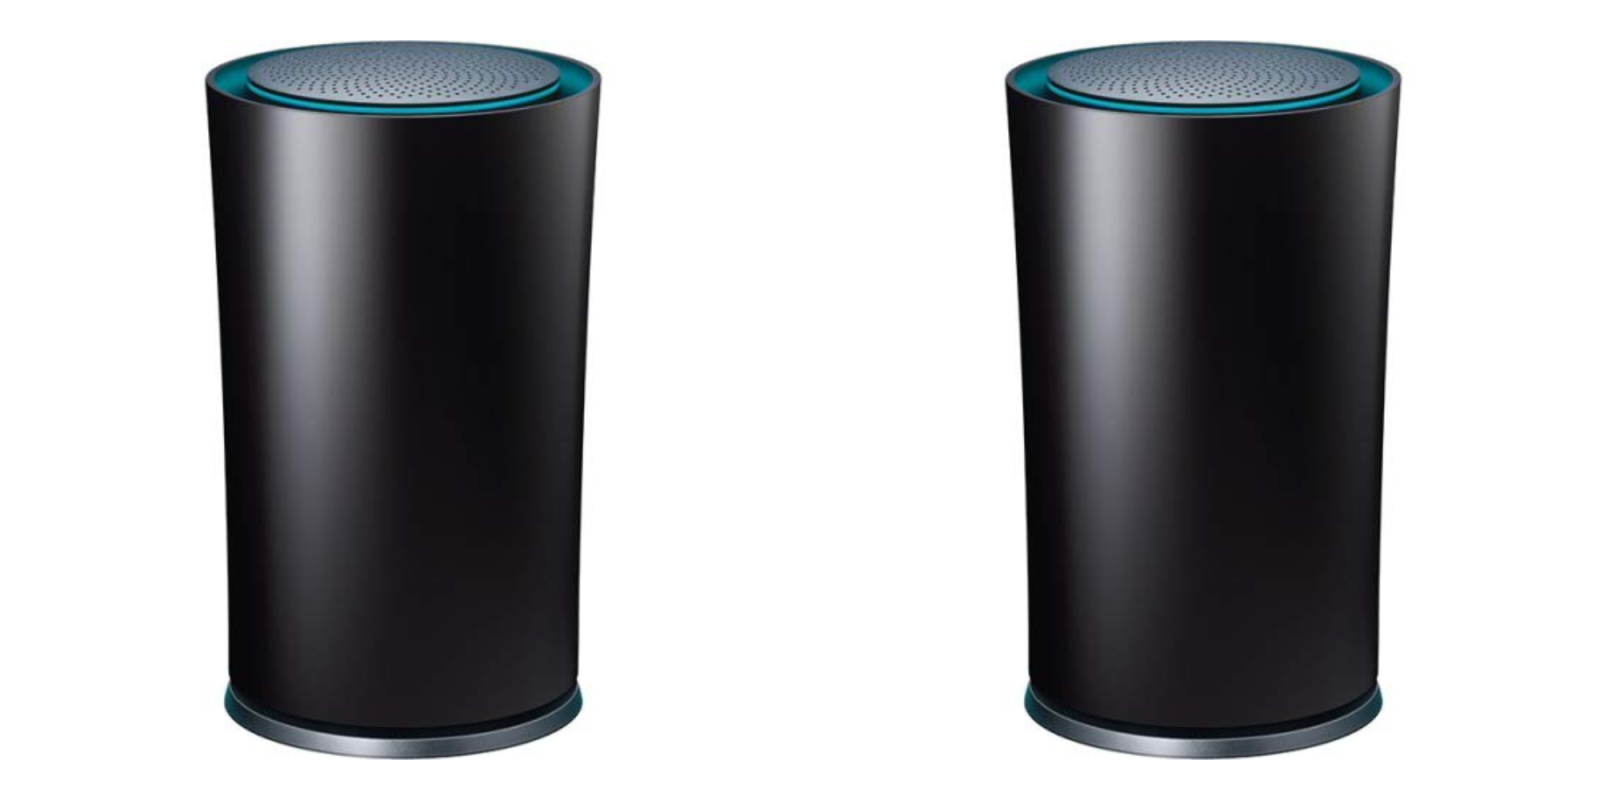 TP-Link's OnHub Google WiFi 802.11ac Router includes a FREE $20 GC at $80 ($120 value)